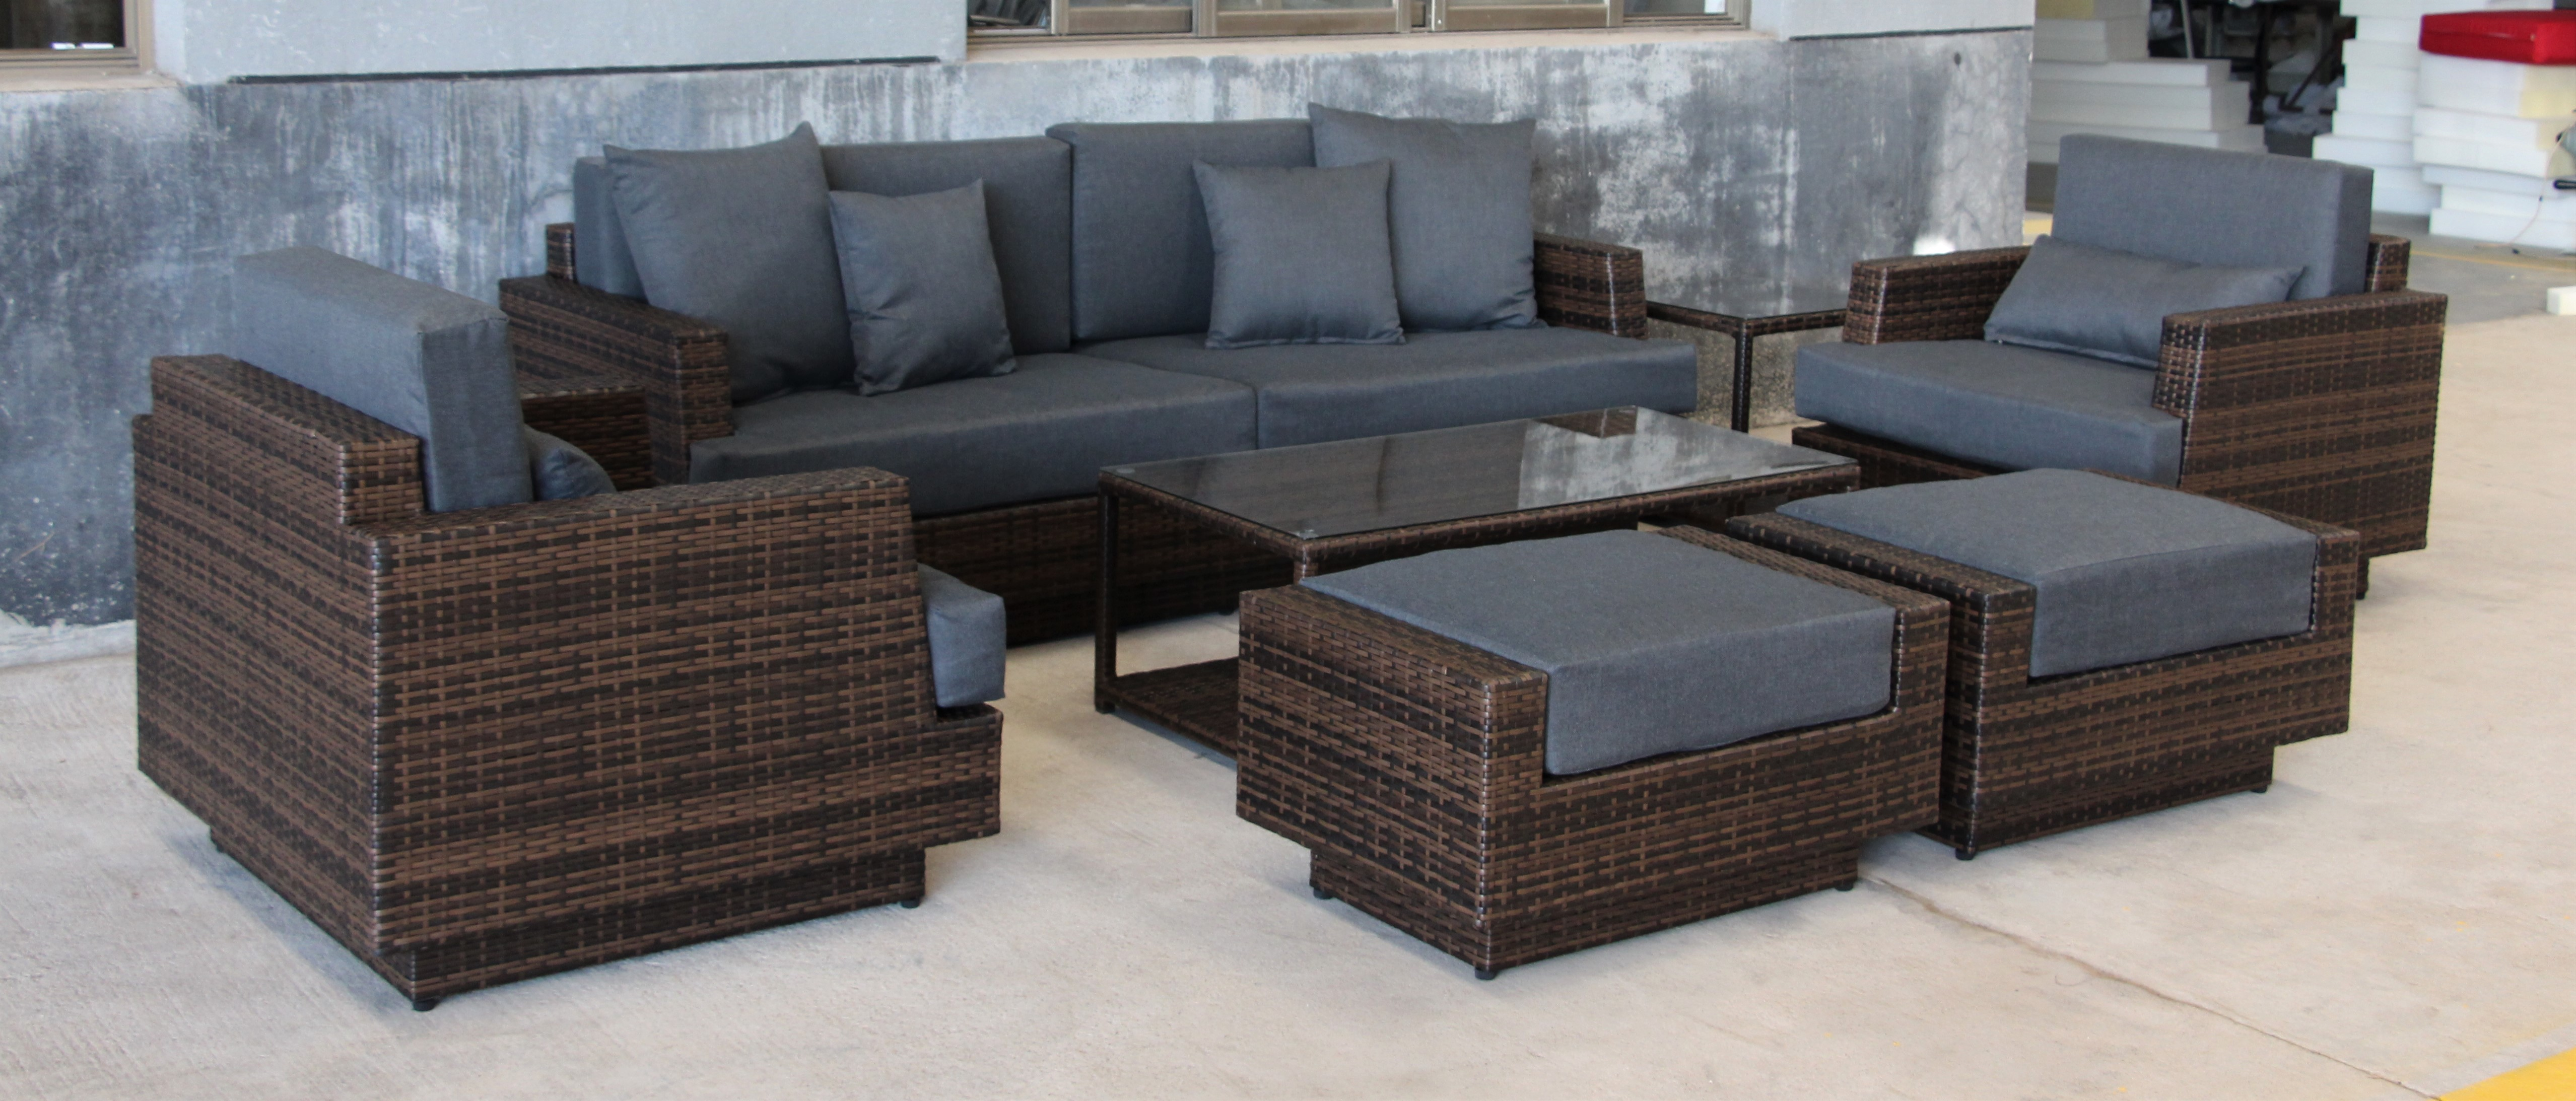 New 7 pcs moonlight outdoor furniture set gray 7pcsfsgry